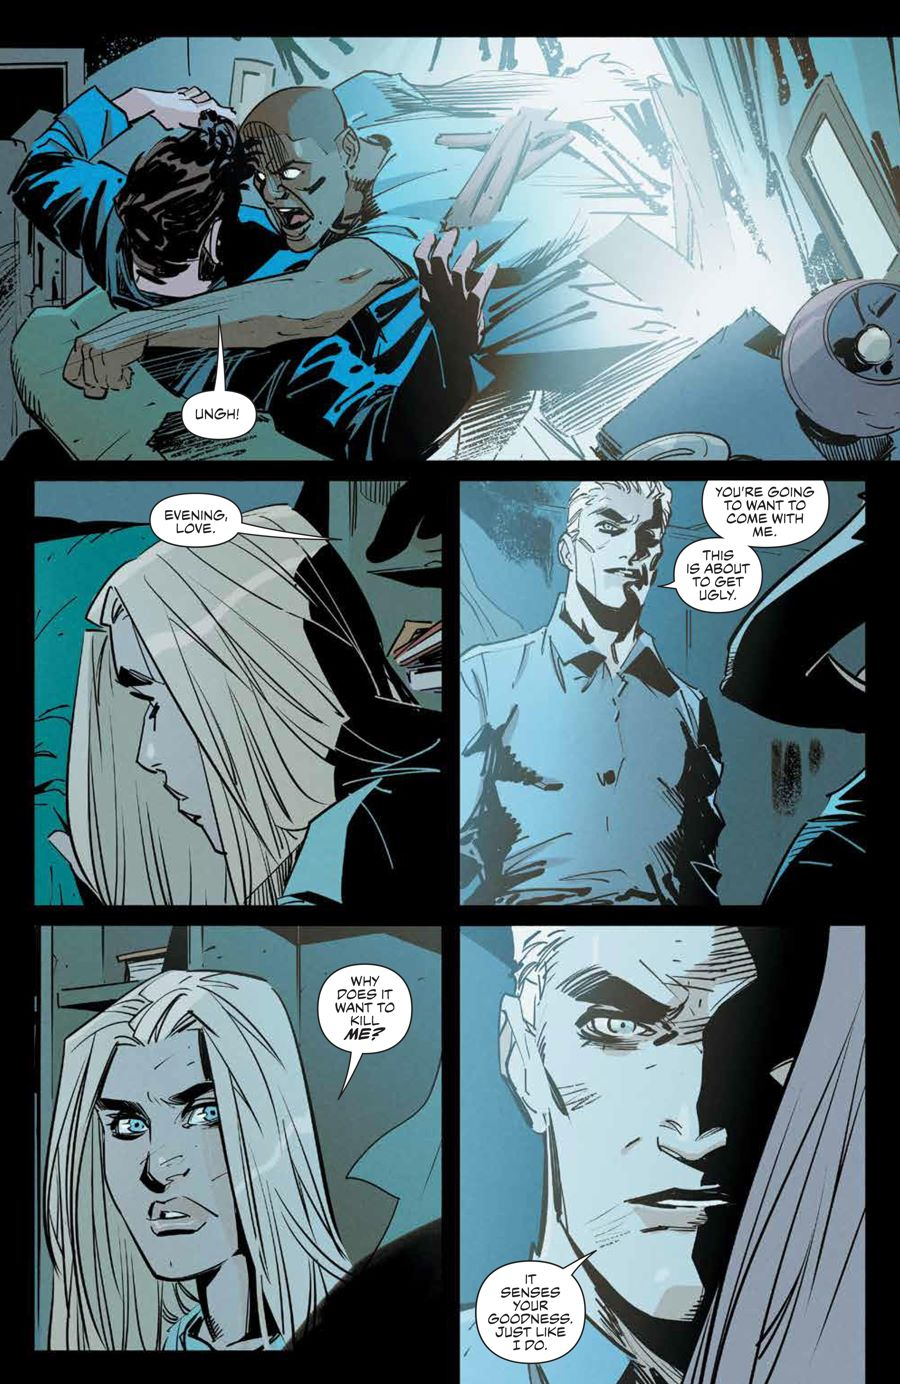 Angel_012_PRESS_6 ComicList Previews: ANGEL AND SPIKE #12